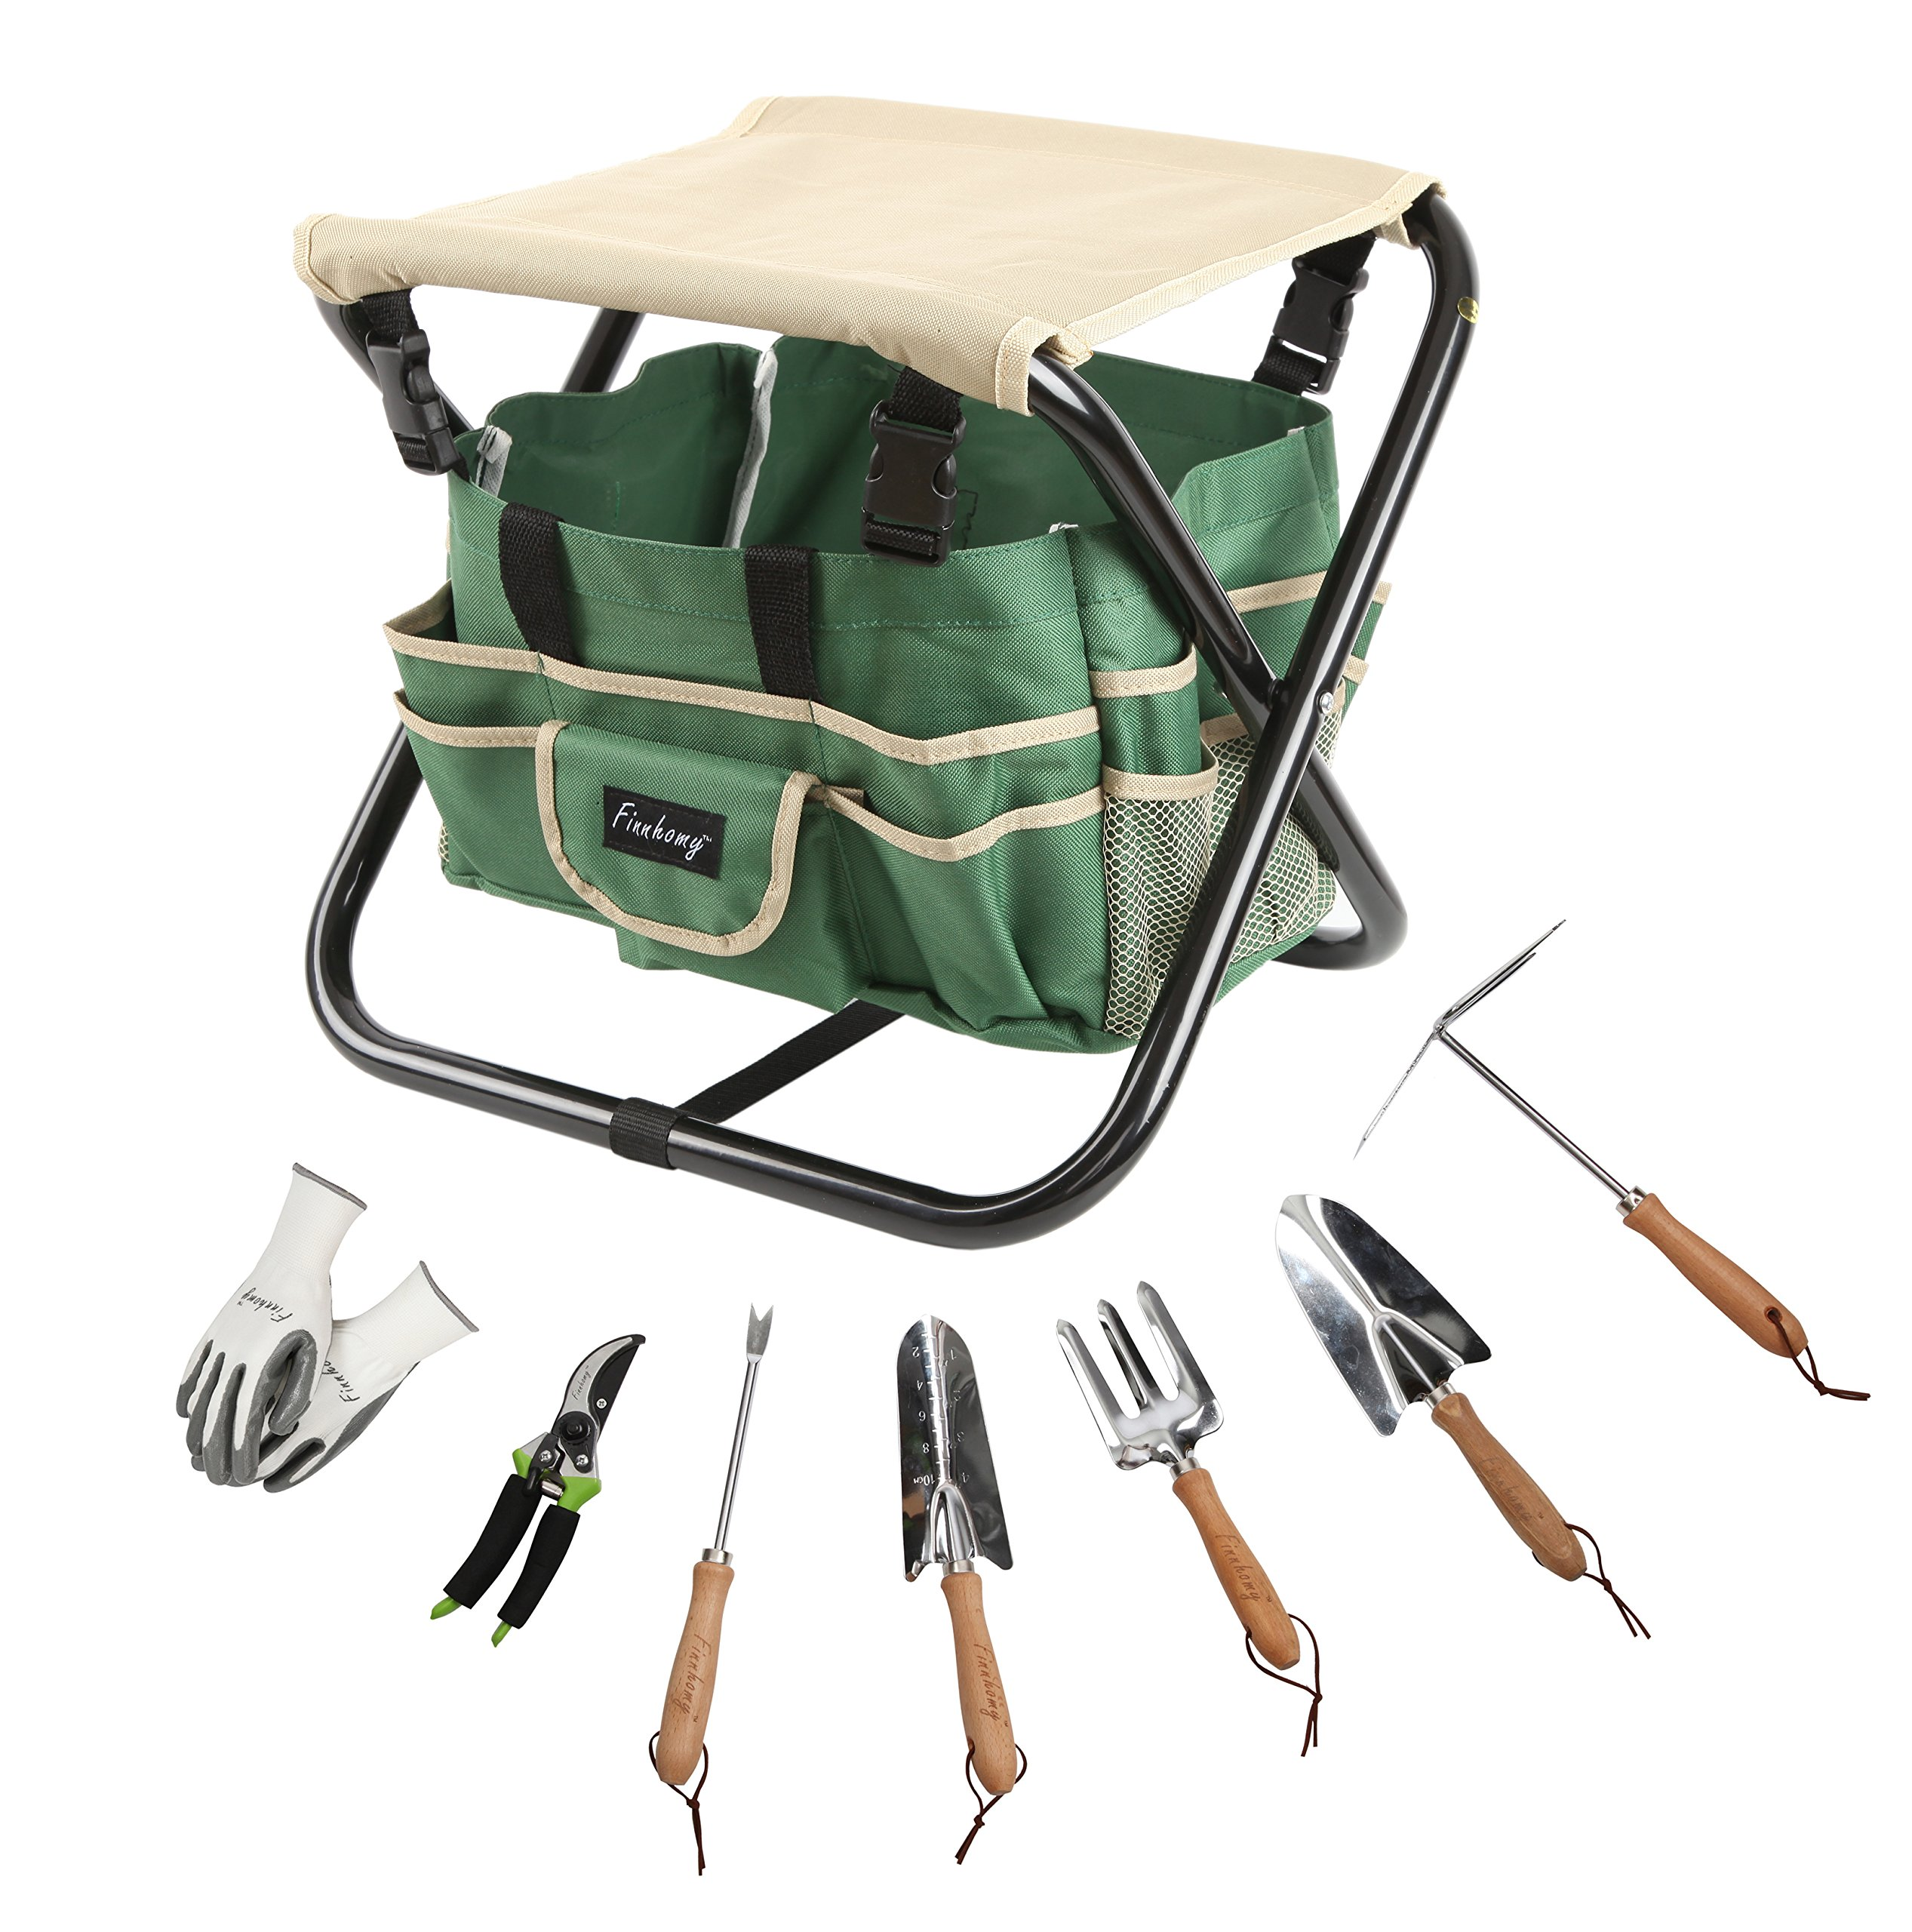 Finnhomy 9 Piece All-In-One Garden Tool Set Folding Stool Seat with 1 Tote Bag, 5 Chrome Steel Garden Tools, 1 Pruning Shears and 1 Pair Working Gloves